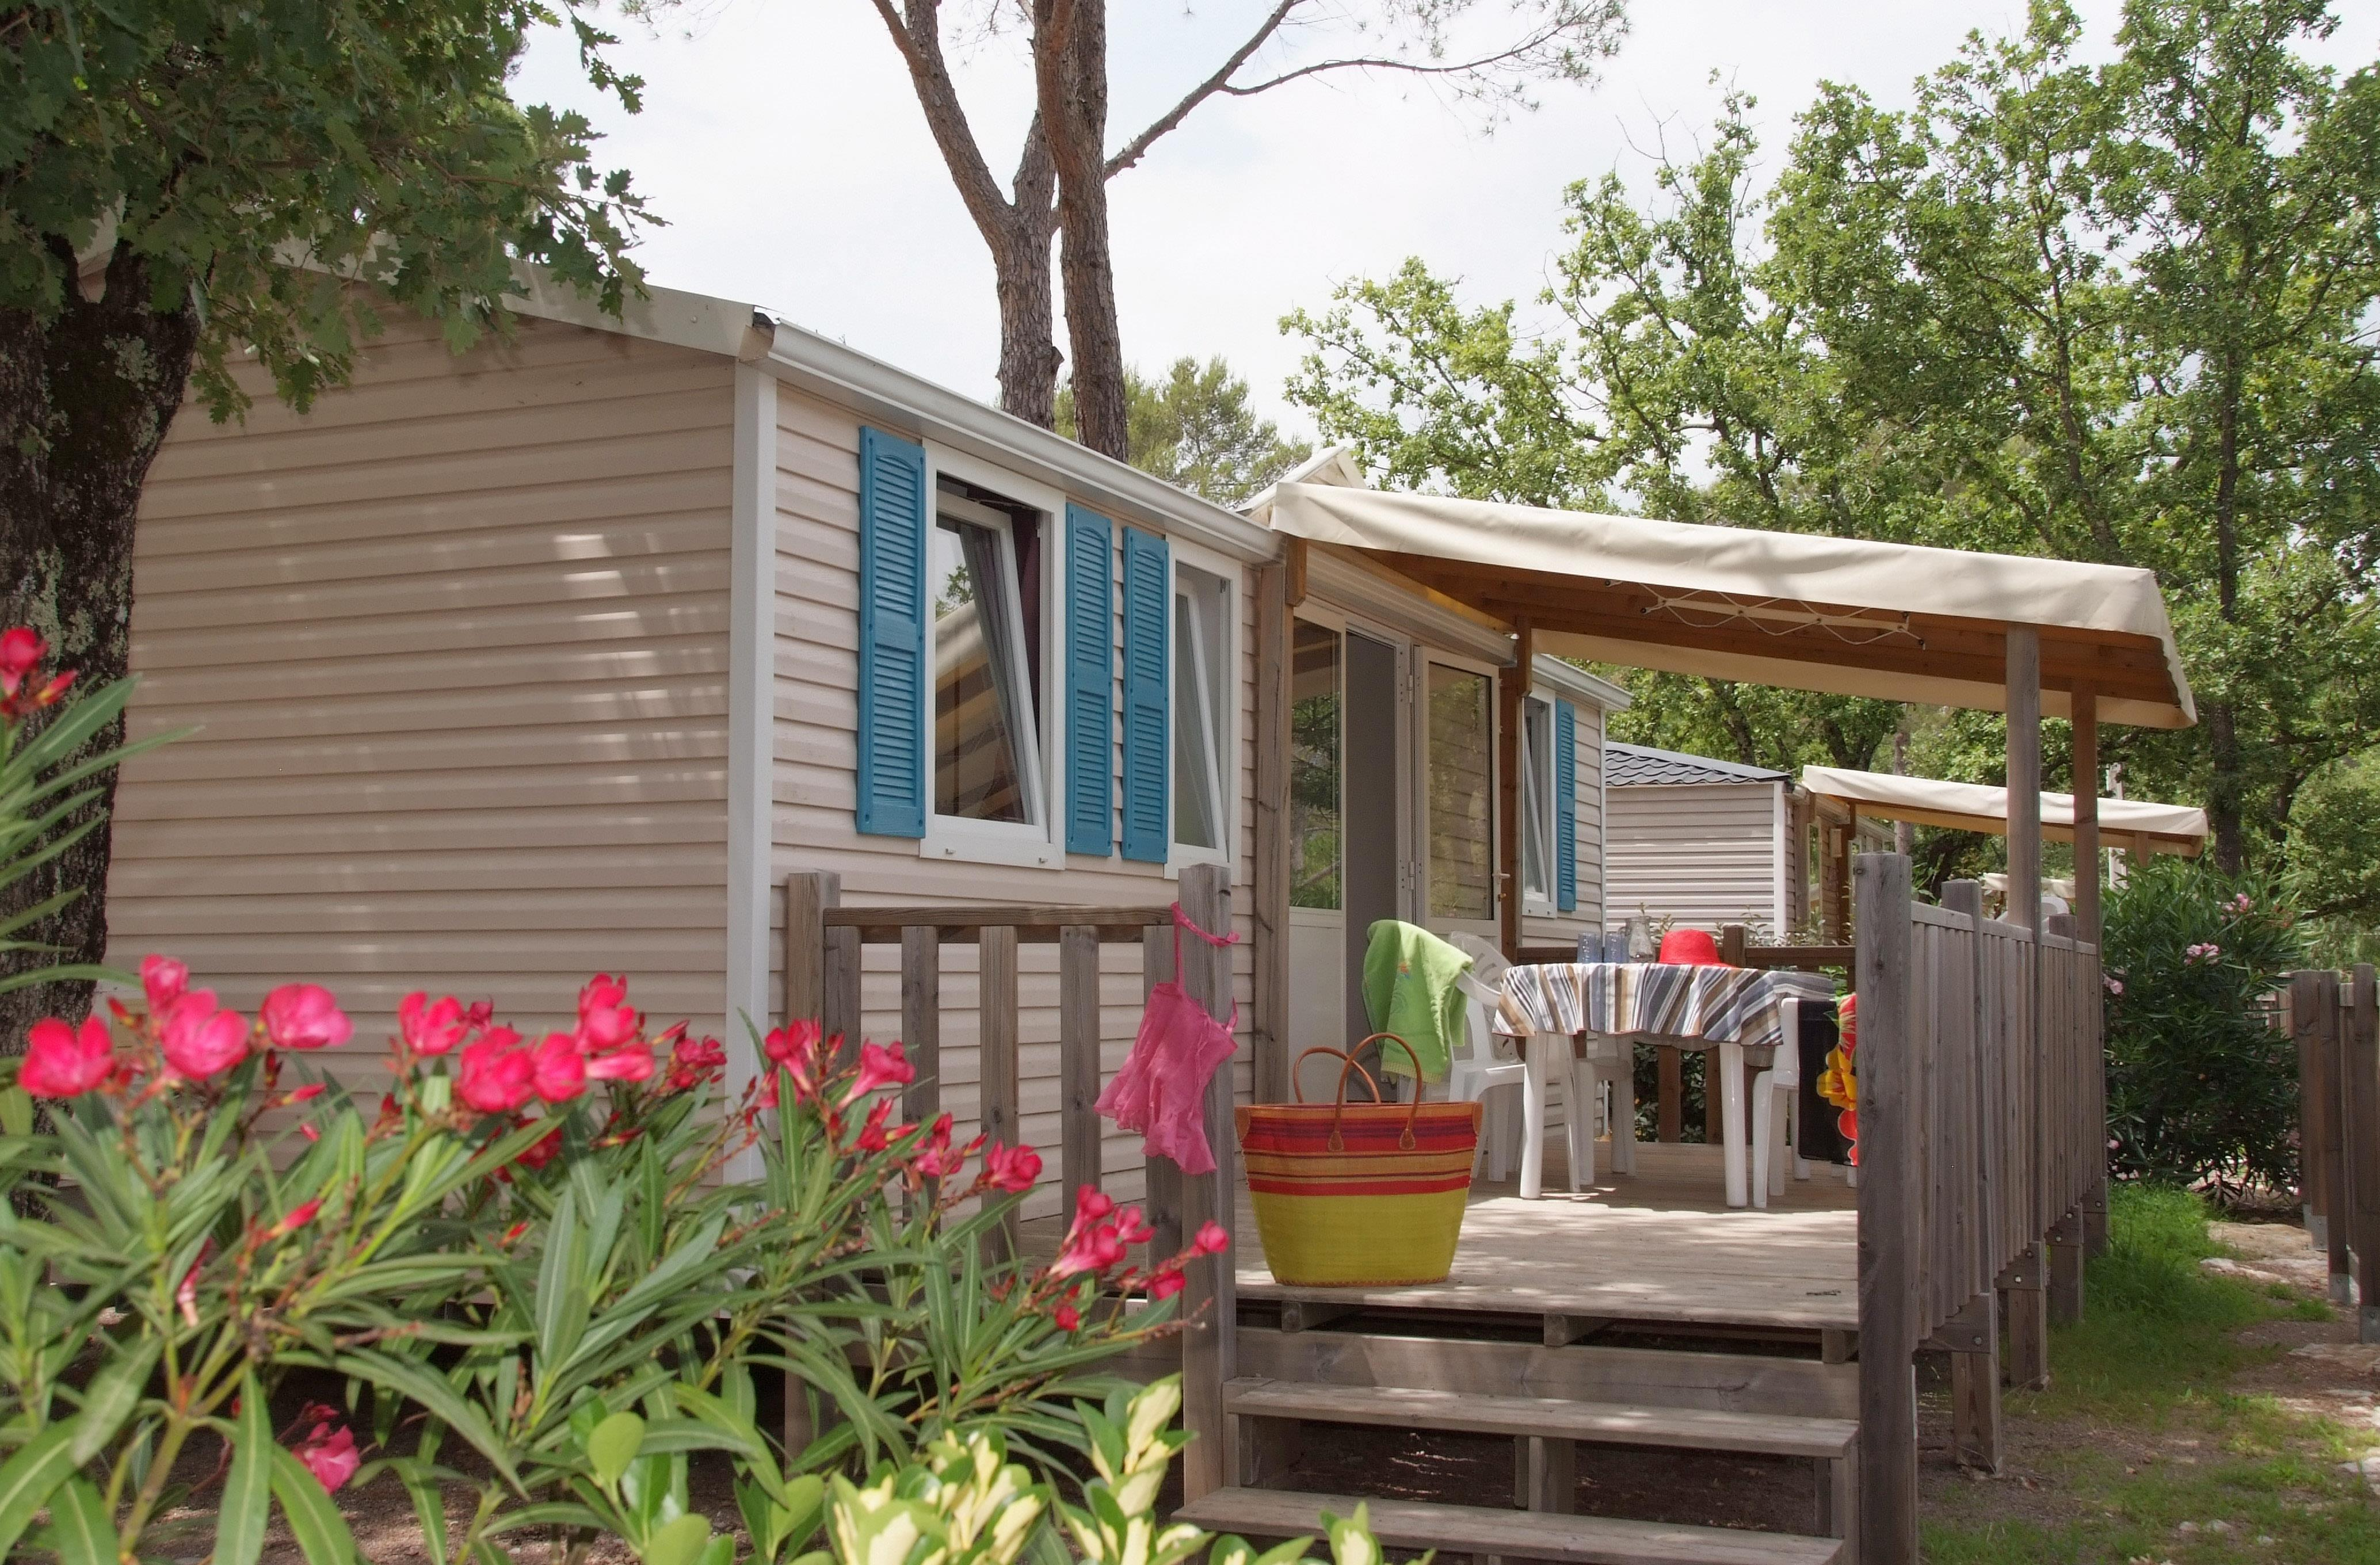 Locatifs - Texas 8 Pers. + 2 Places Véhicule Eco. - Camping Les Cigales